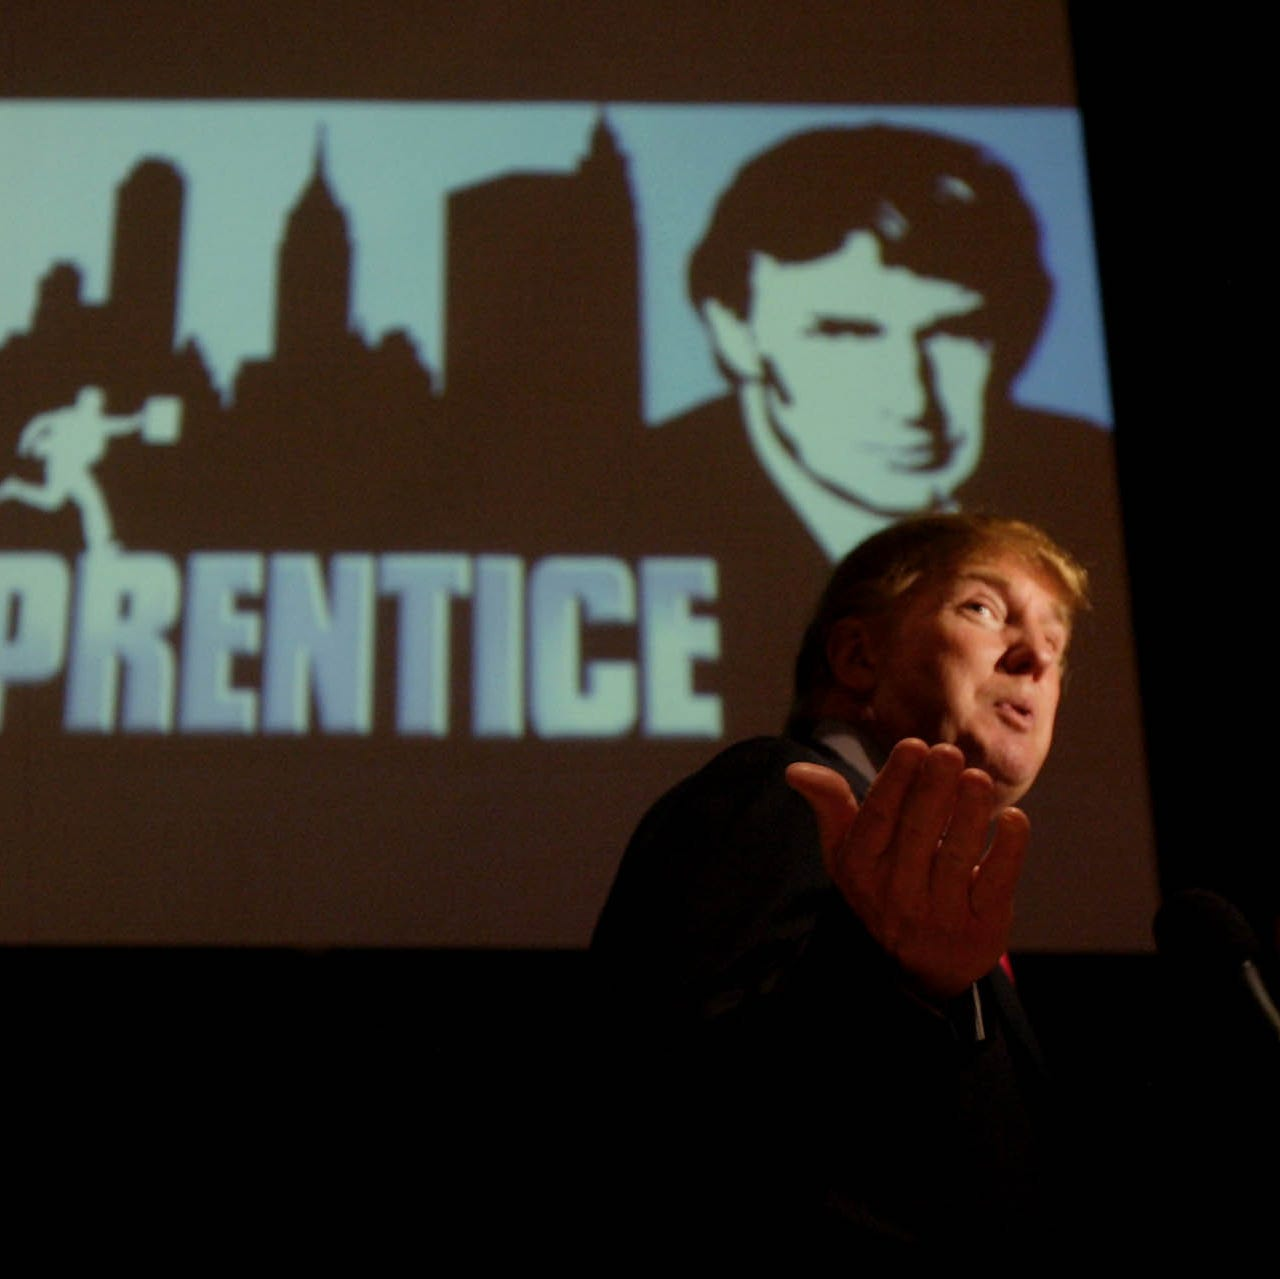 Donald Trump, even with all his daddy's money, is the real apprentice